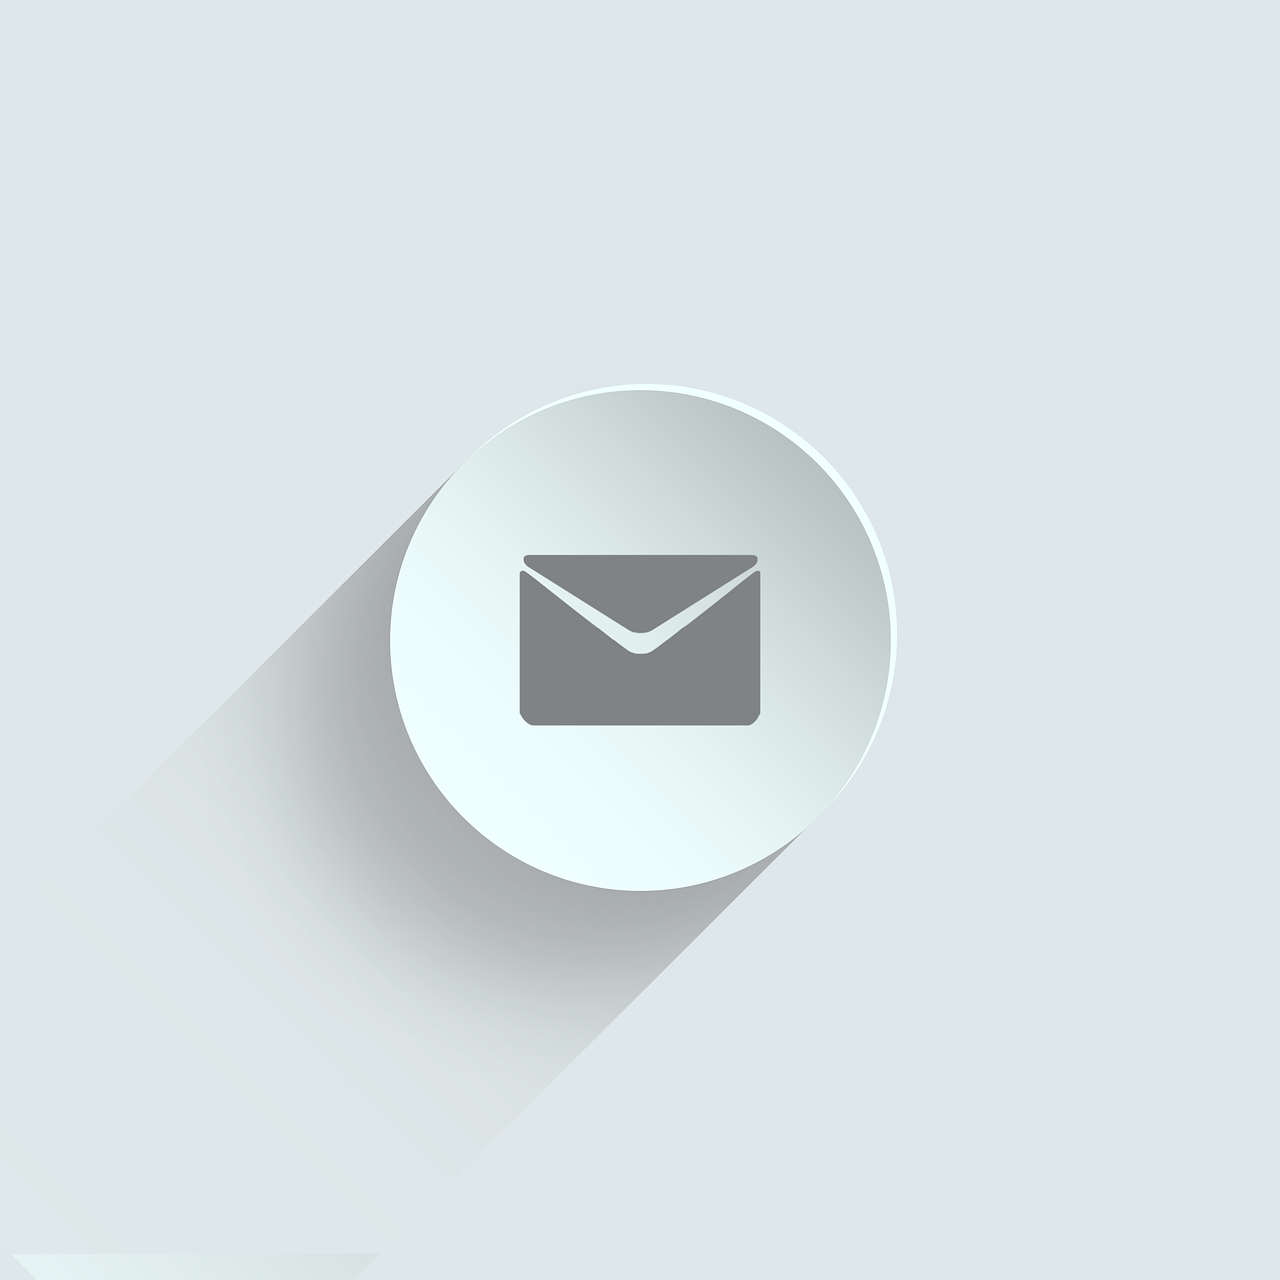 email, icon, mail